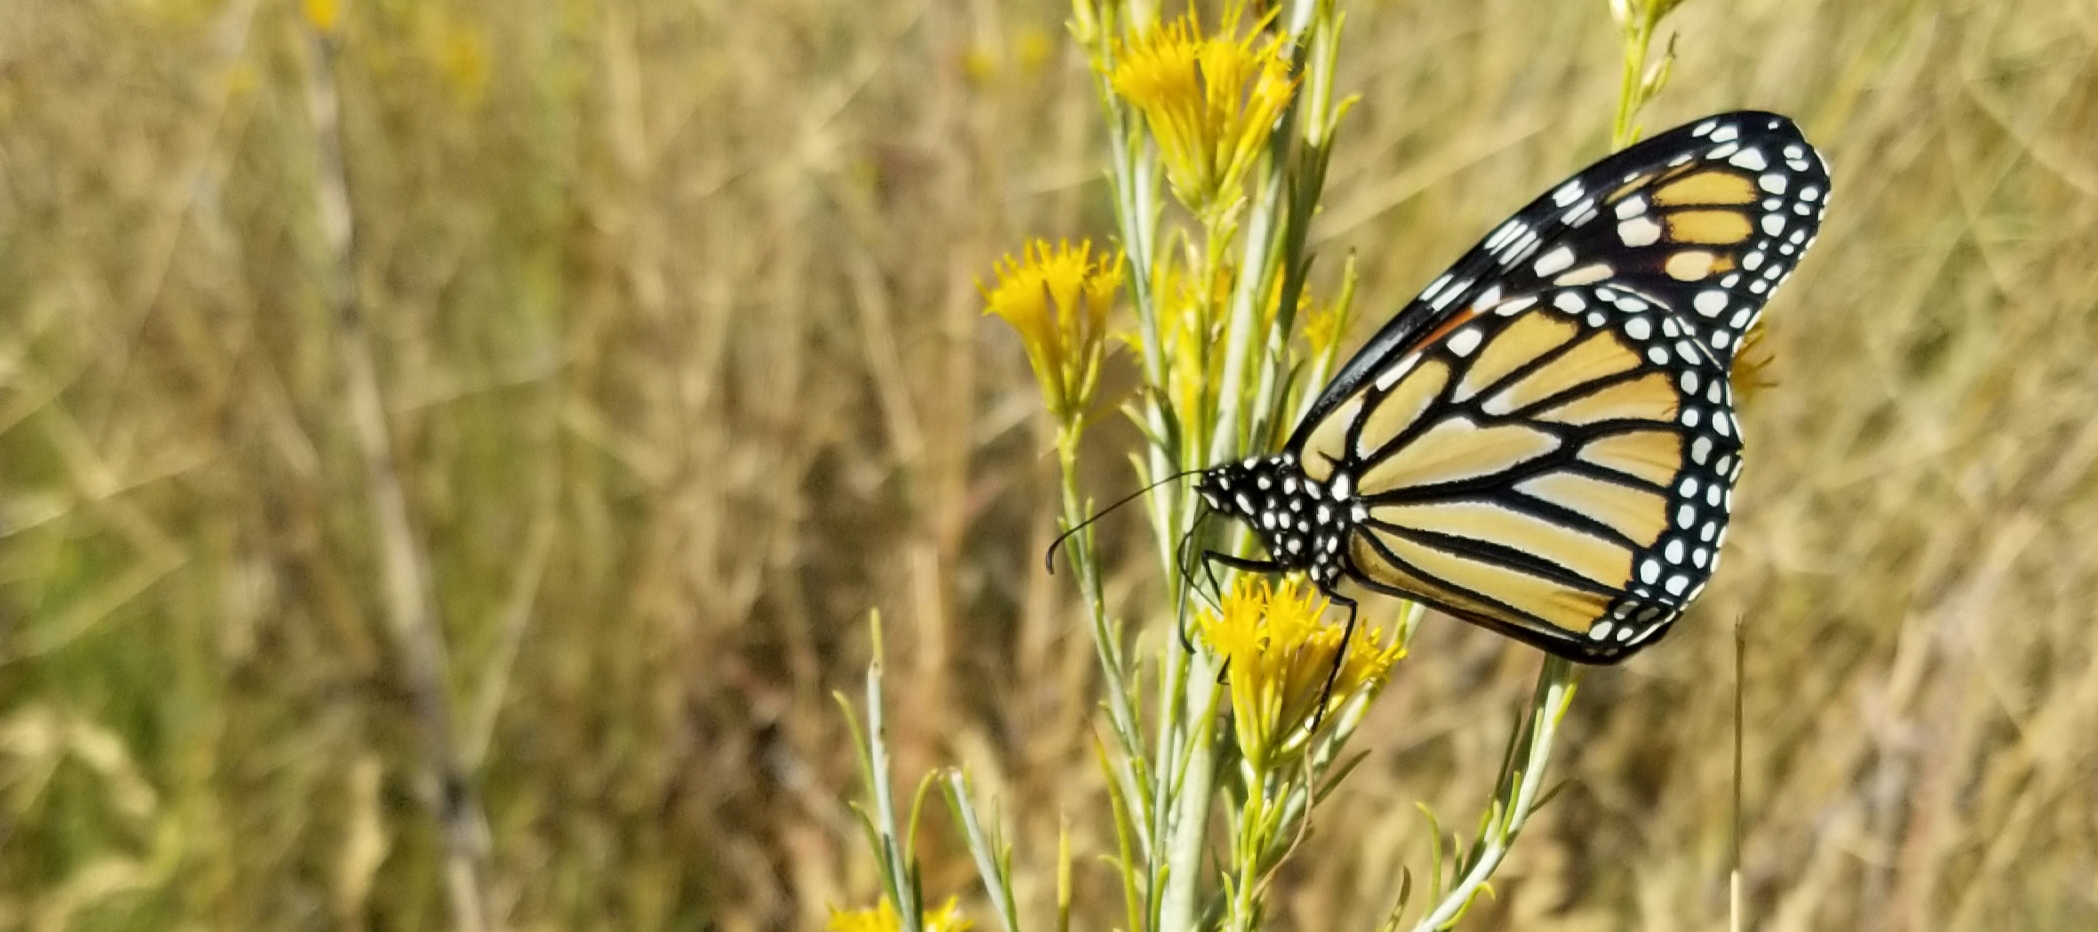 A monarch perches on a stalk of yellow flowers in a dry, grassy area.